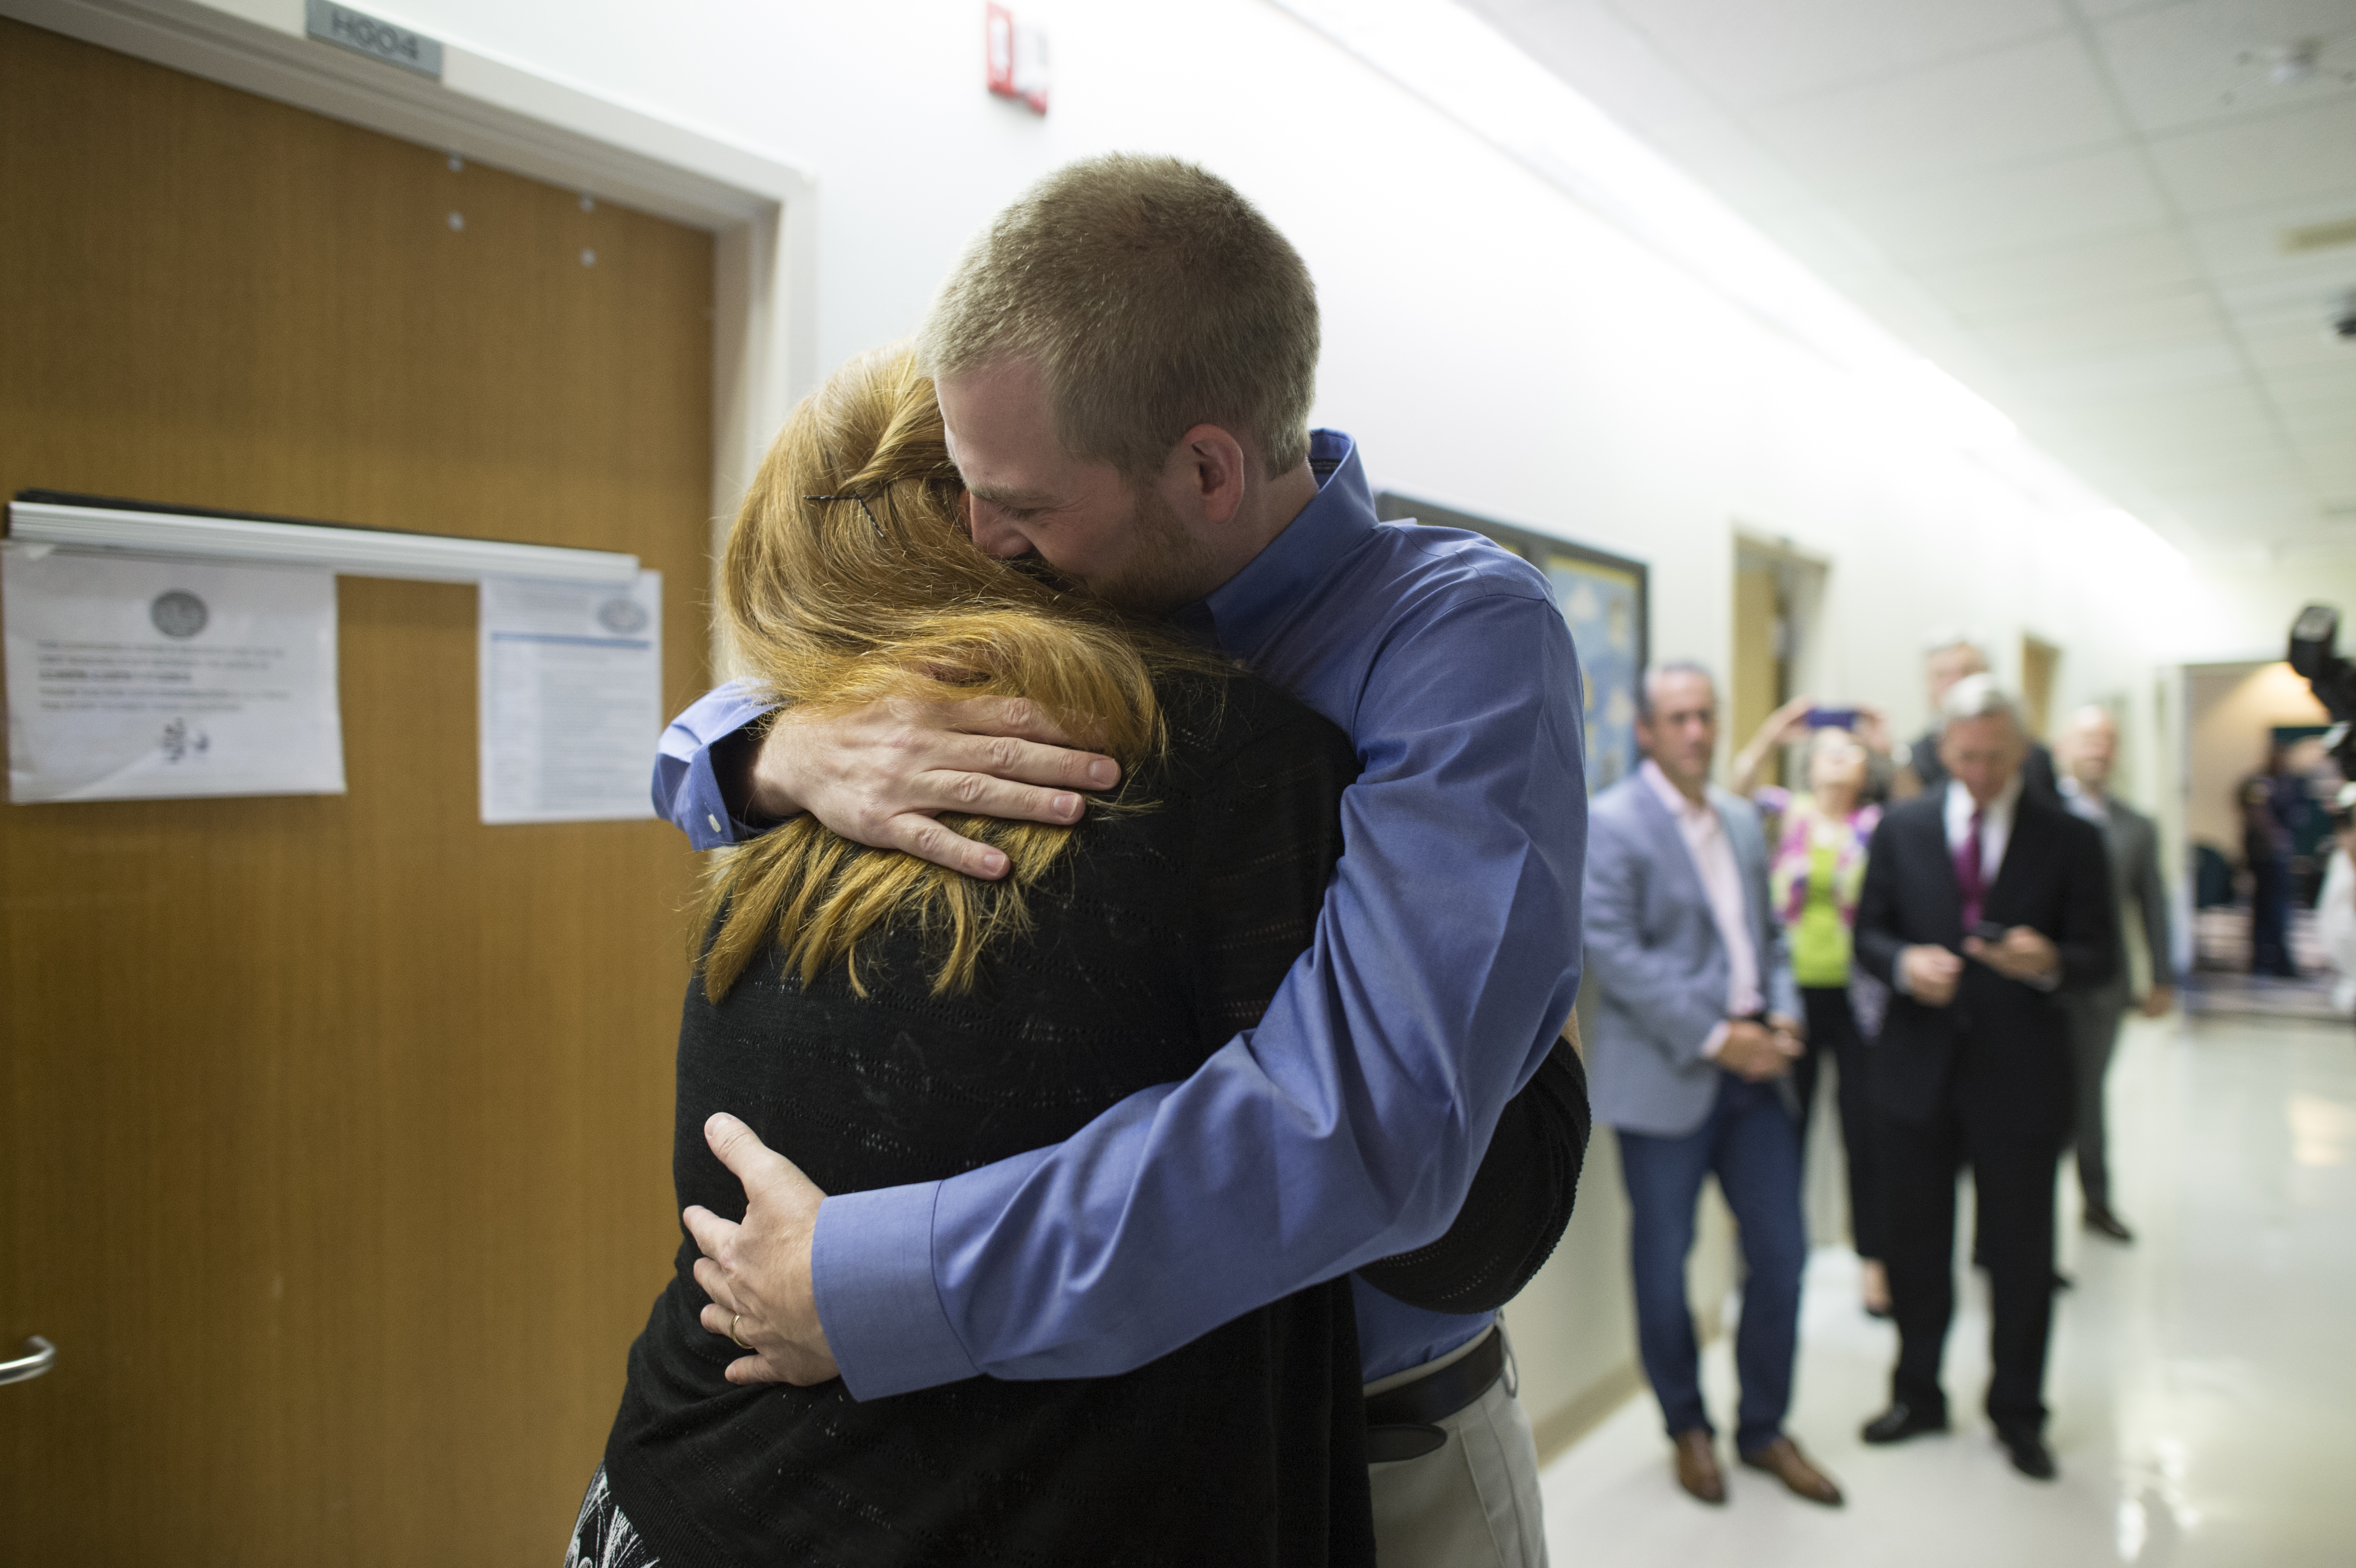 Dr. Kent Brantly hugs his wife Amber after being discharged from Emory University Hospital